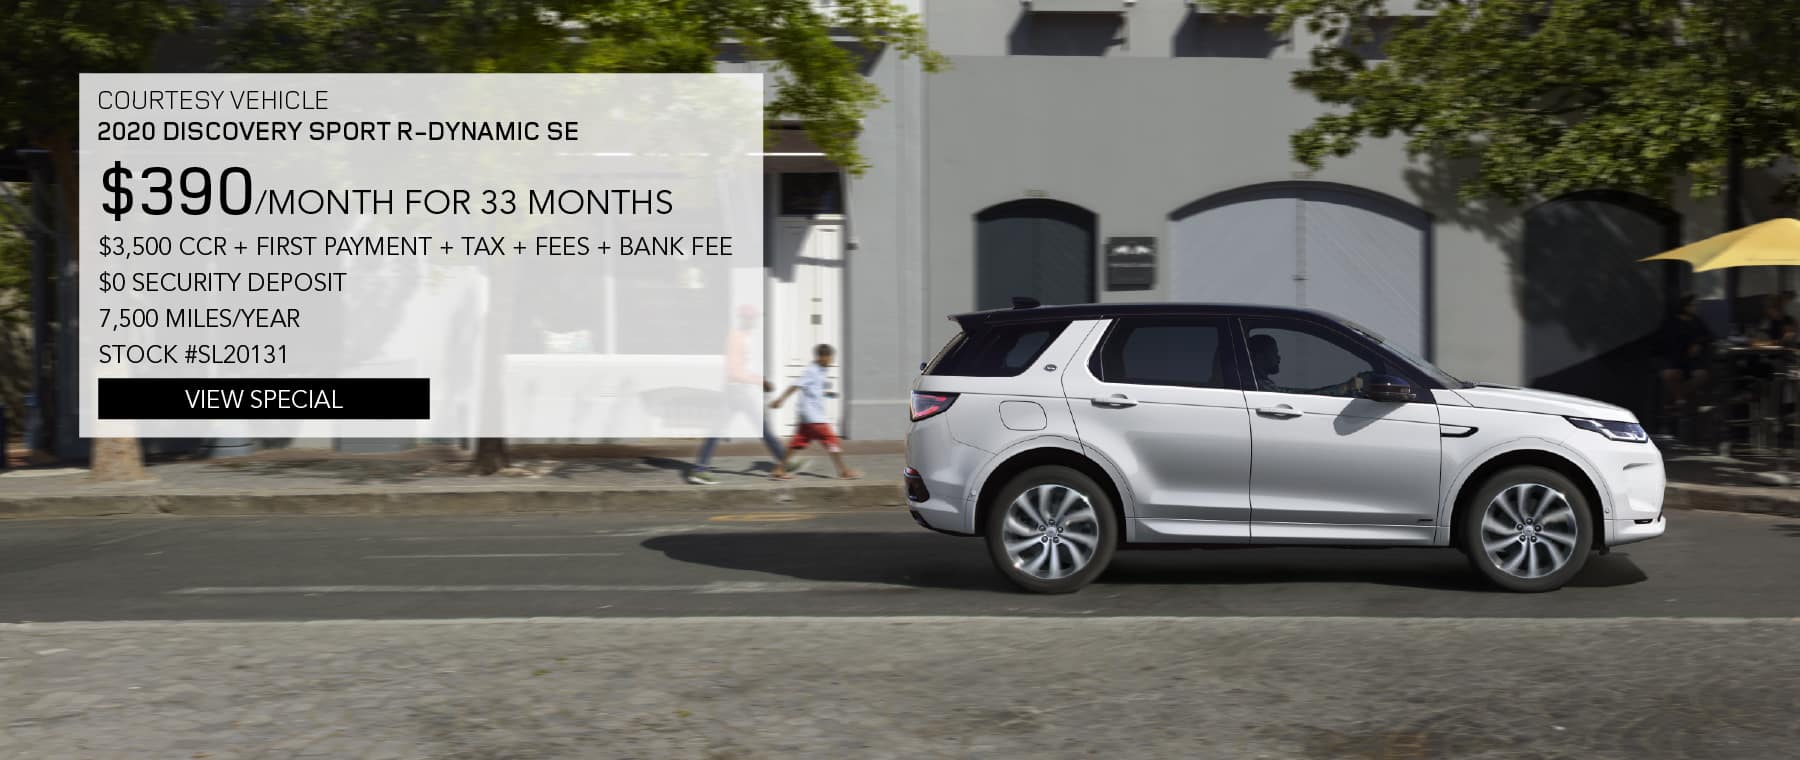 2020 Land Rover Discovery Sport SE R-Dynamic. $390 per month for 33 months. $3,500 CCR plus first payment plus tax plus fees plus bank fees. $0 security deposit. 7,500 miles per year. Stock number SL20131. View Special. White Discovery Sport driving through city.